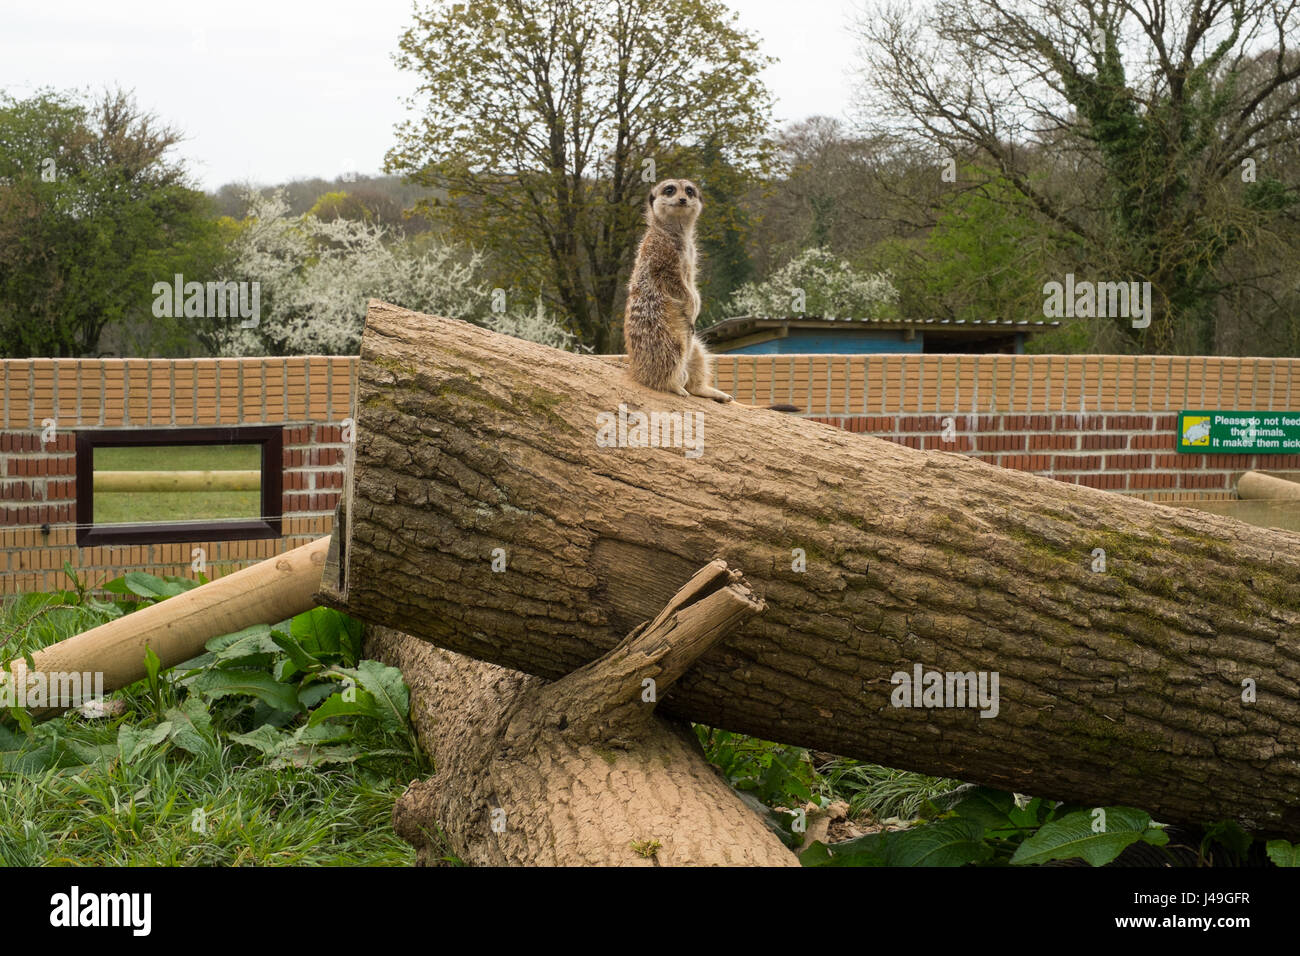 Meerkat at Woodlands Family Theme Park, Totnes, Devon , England, United Kingdom - Stock Image